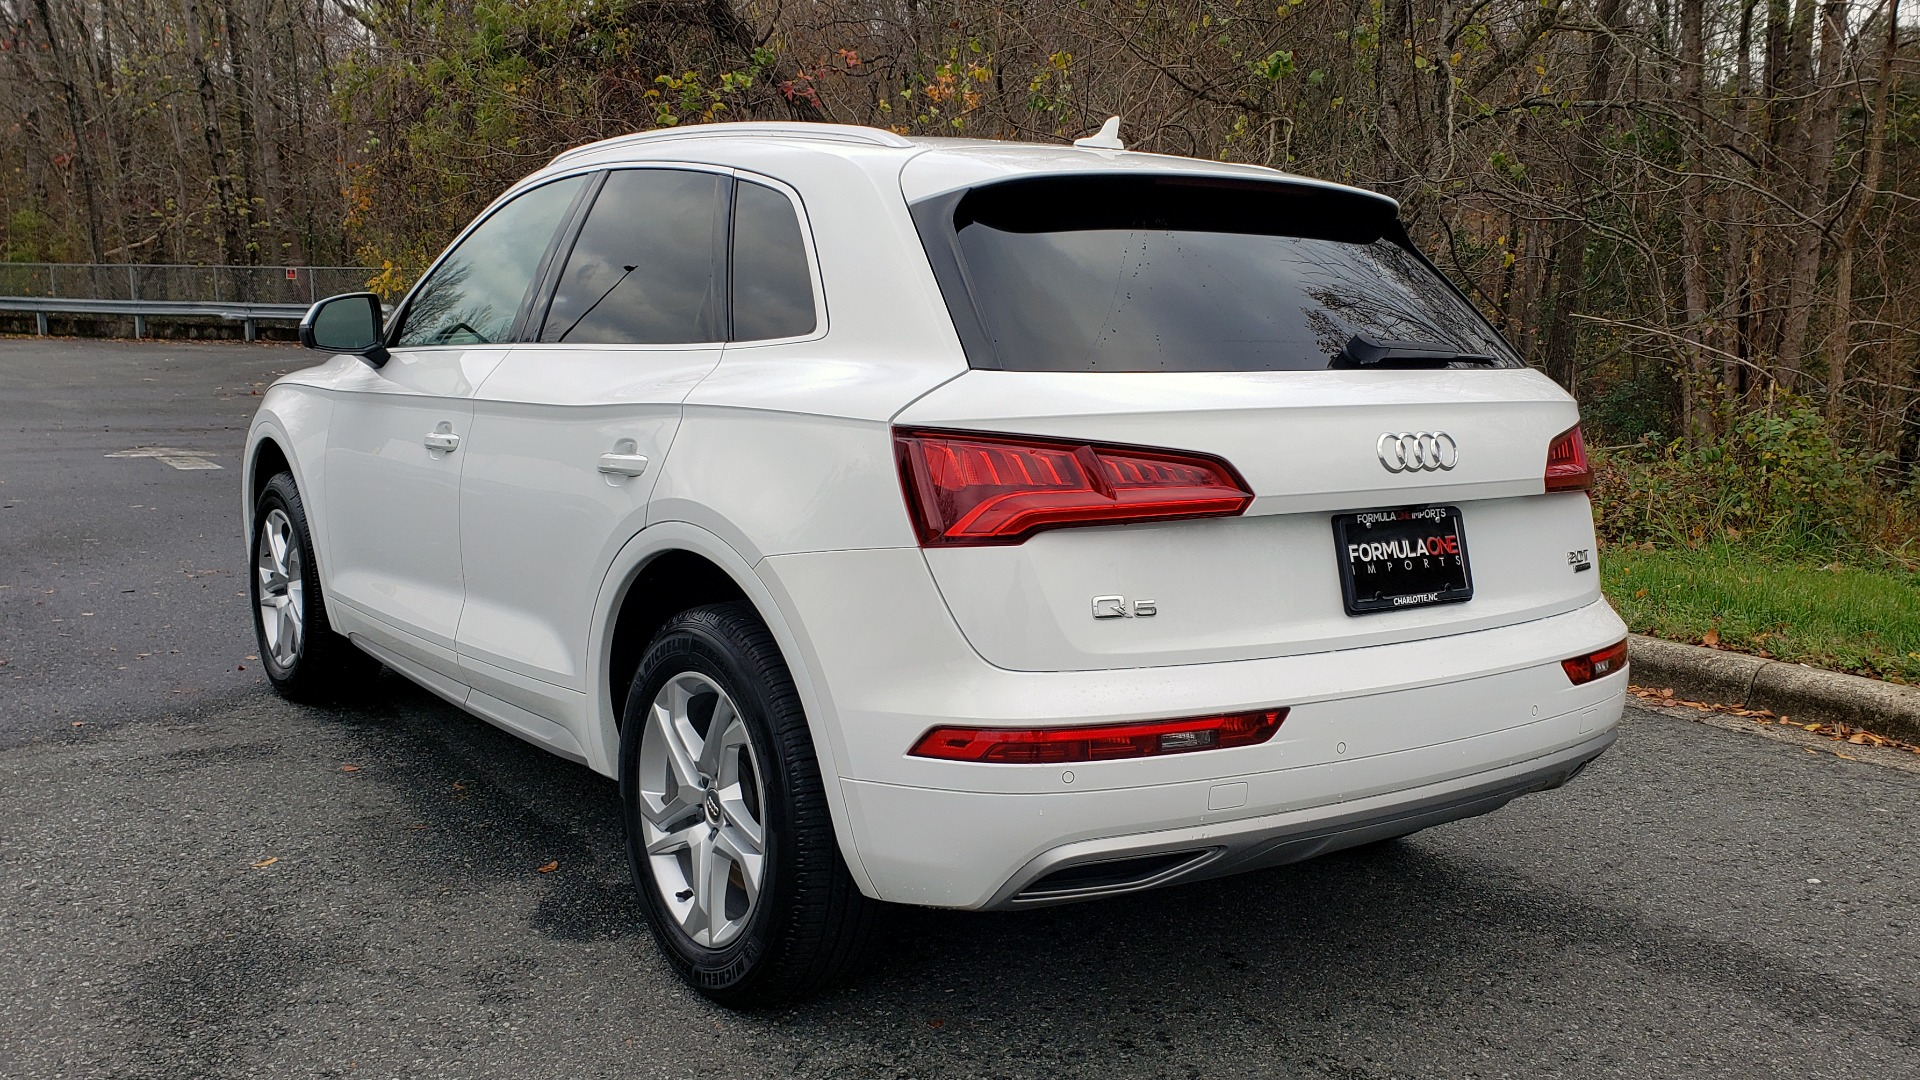 Used 2018 Audi Q5 PREMIUM PLUS / NAV PKG / SUNROOF / CLD WTHR / REARVIEW for sale Sold at Formula Imports in Charlotte NC 28227 3